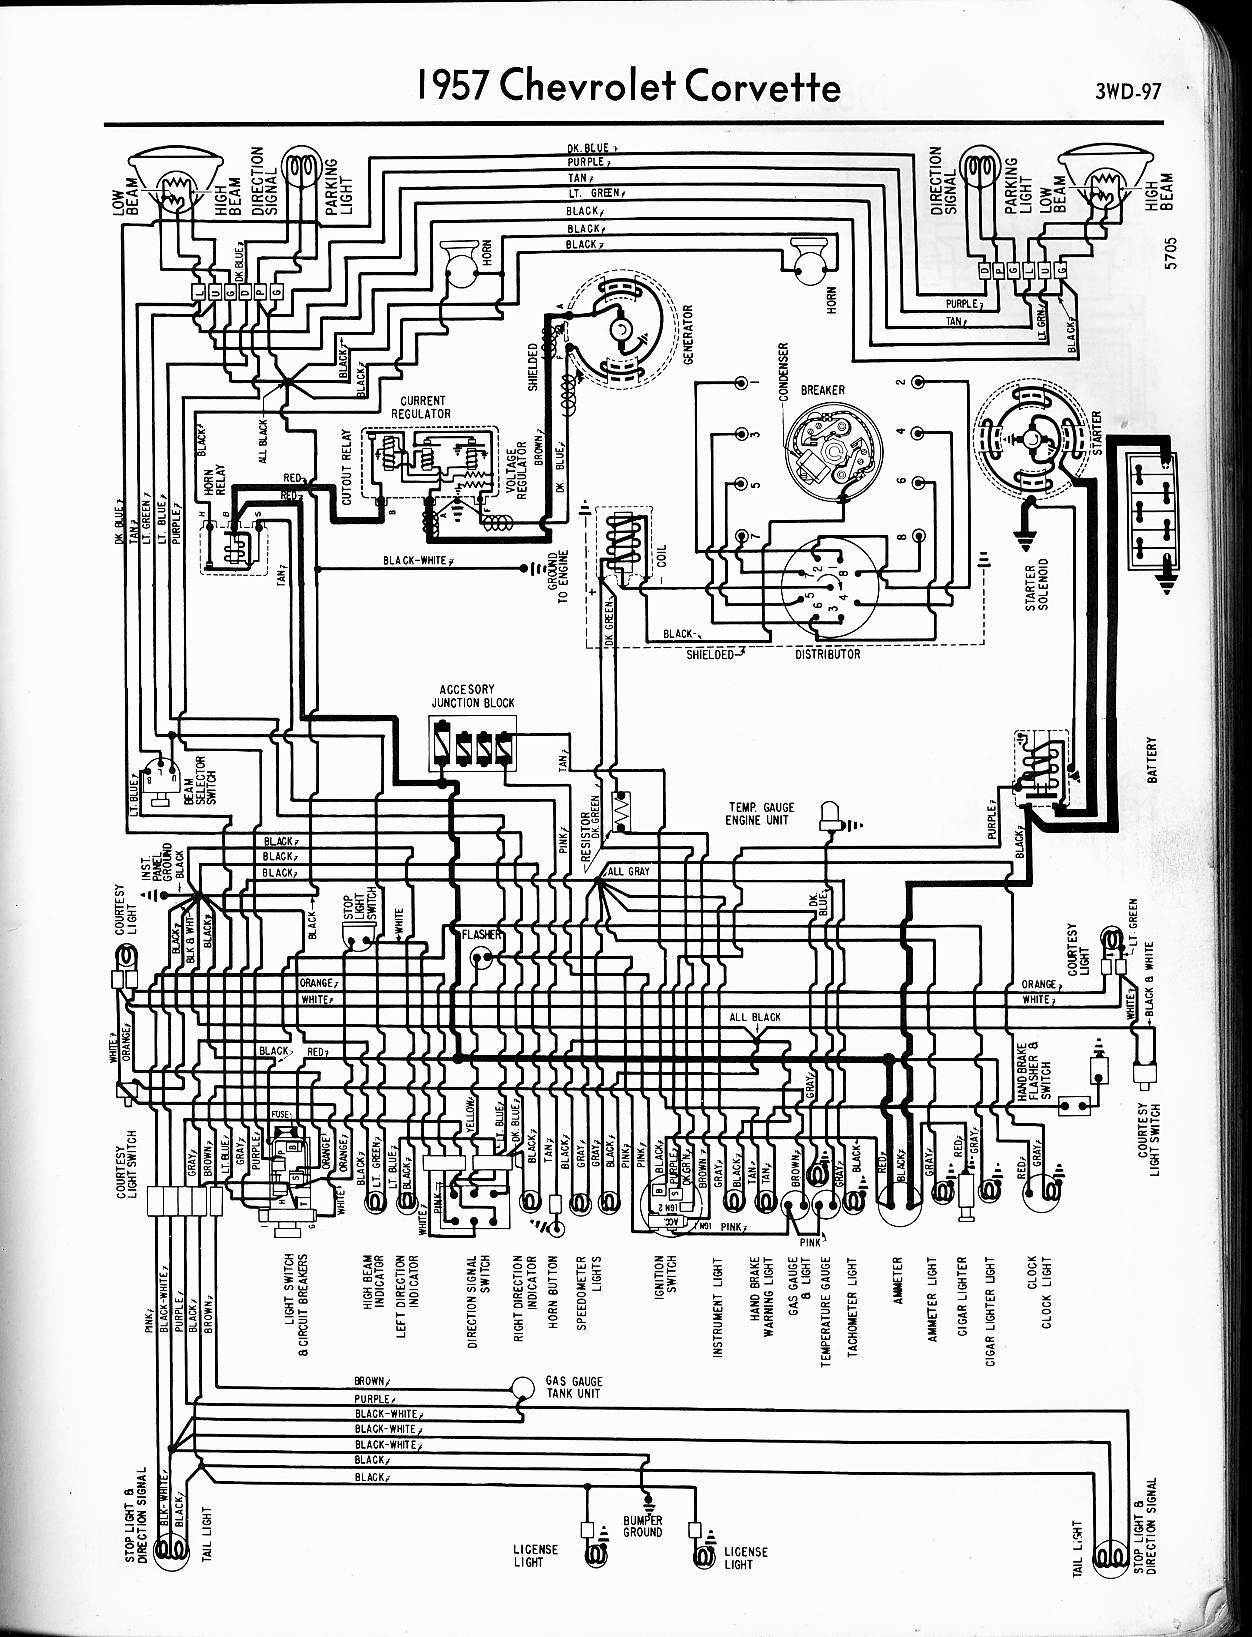 MWireChev57_3WD 097 57 65 chevy wiring diagrams chevy wiring diagrams at n-0.co